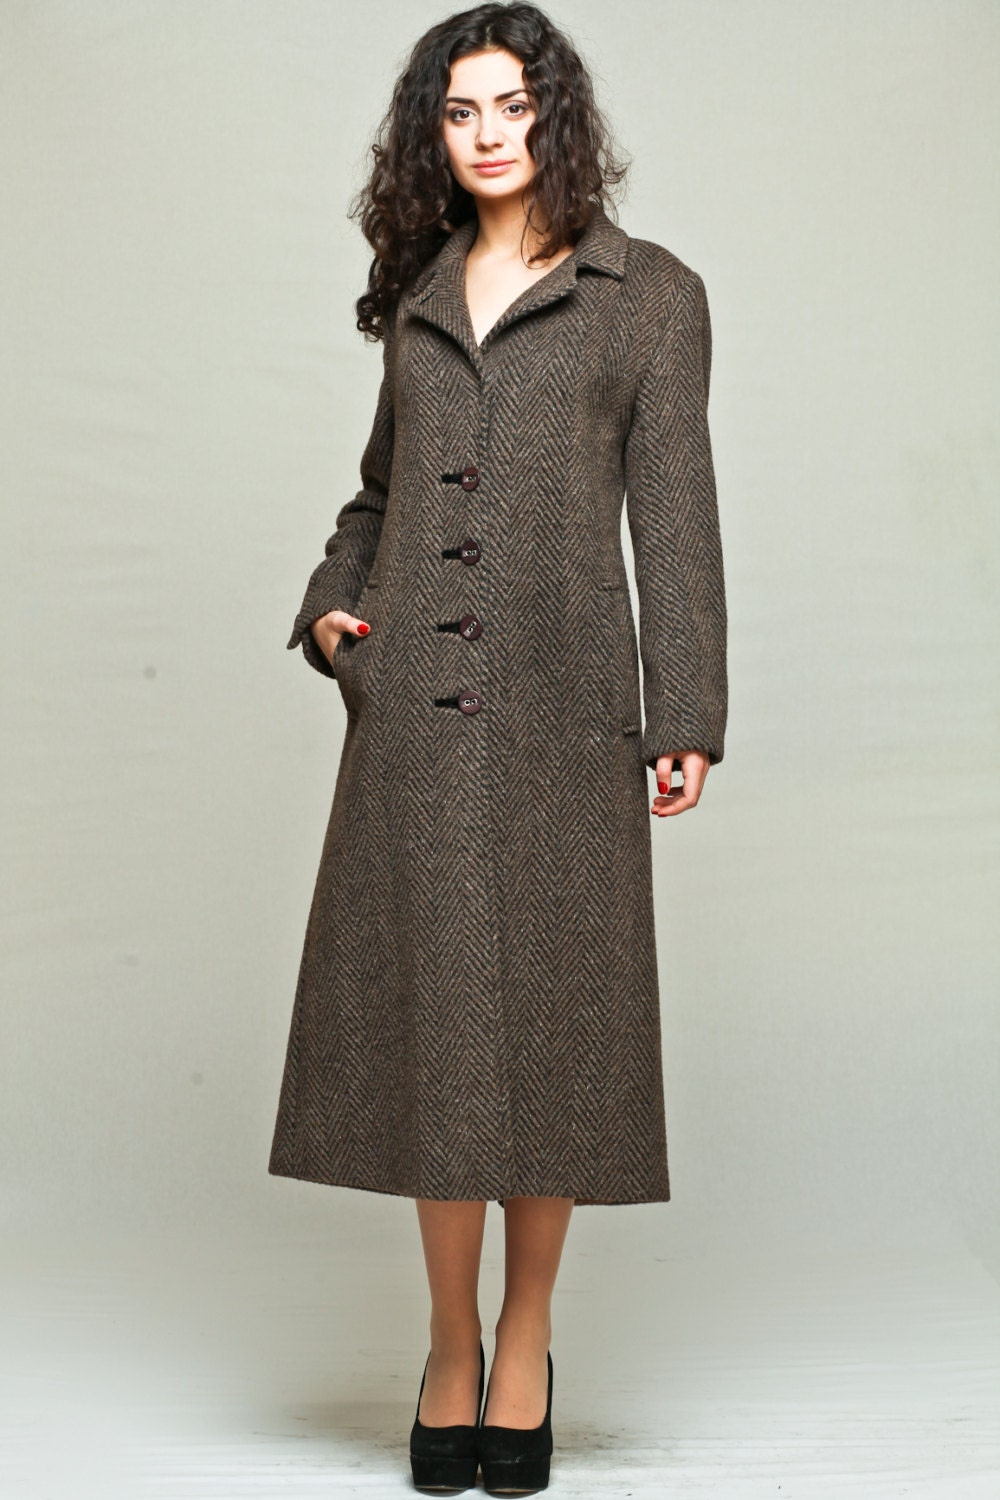 Shop online for Women's Wool Coats & Cashmere Coats with Free Shipping and Free Returns. Bloomingdale's like no other store in the world. Womens Winter Coats. The Kooples Double-Breasted Long Wool Coat $ FRIENDS & FAMILY: 25% OFF DISCOUNT APPLIED IN BAG. Emporio Armani Fur-Effect Wool-Blend Plaid Jacket.